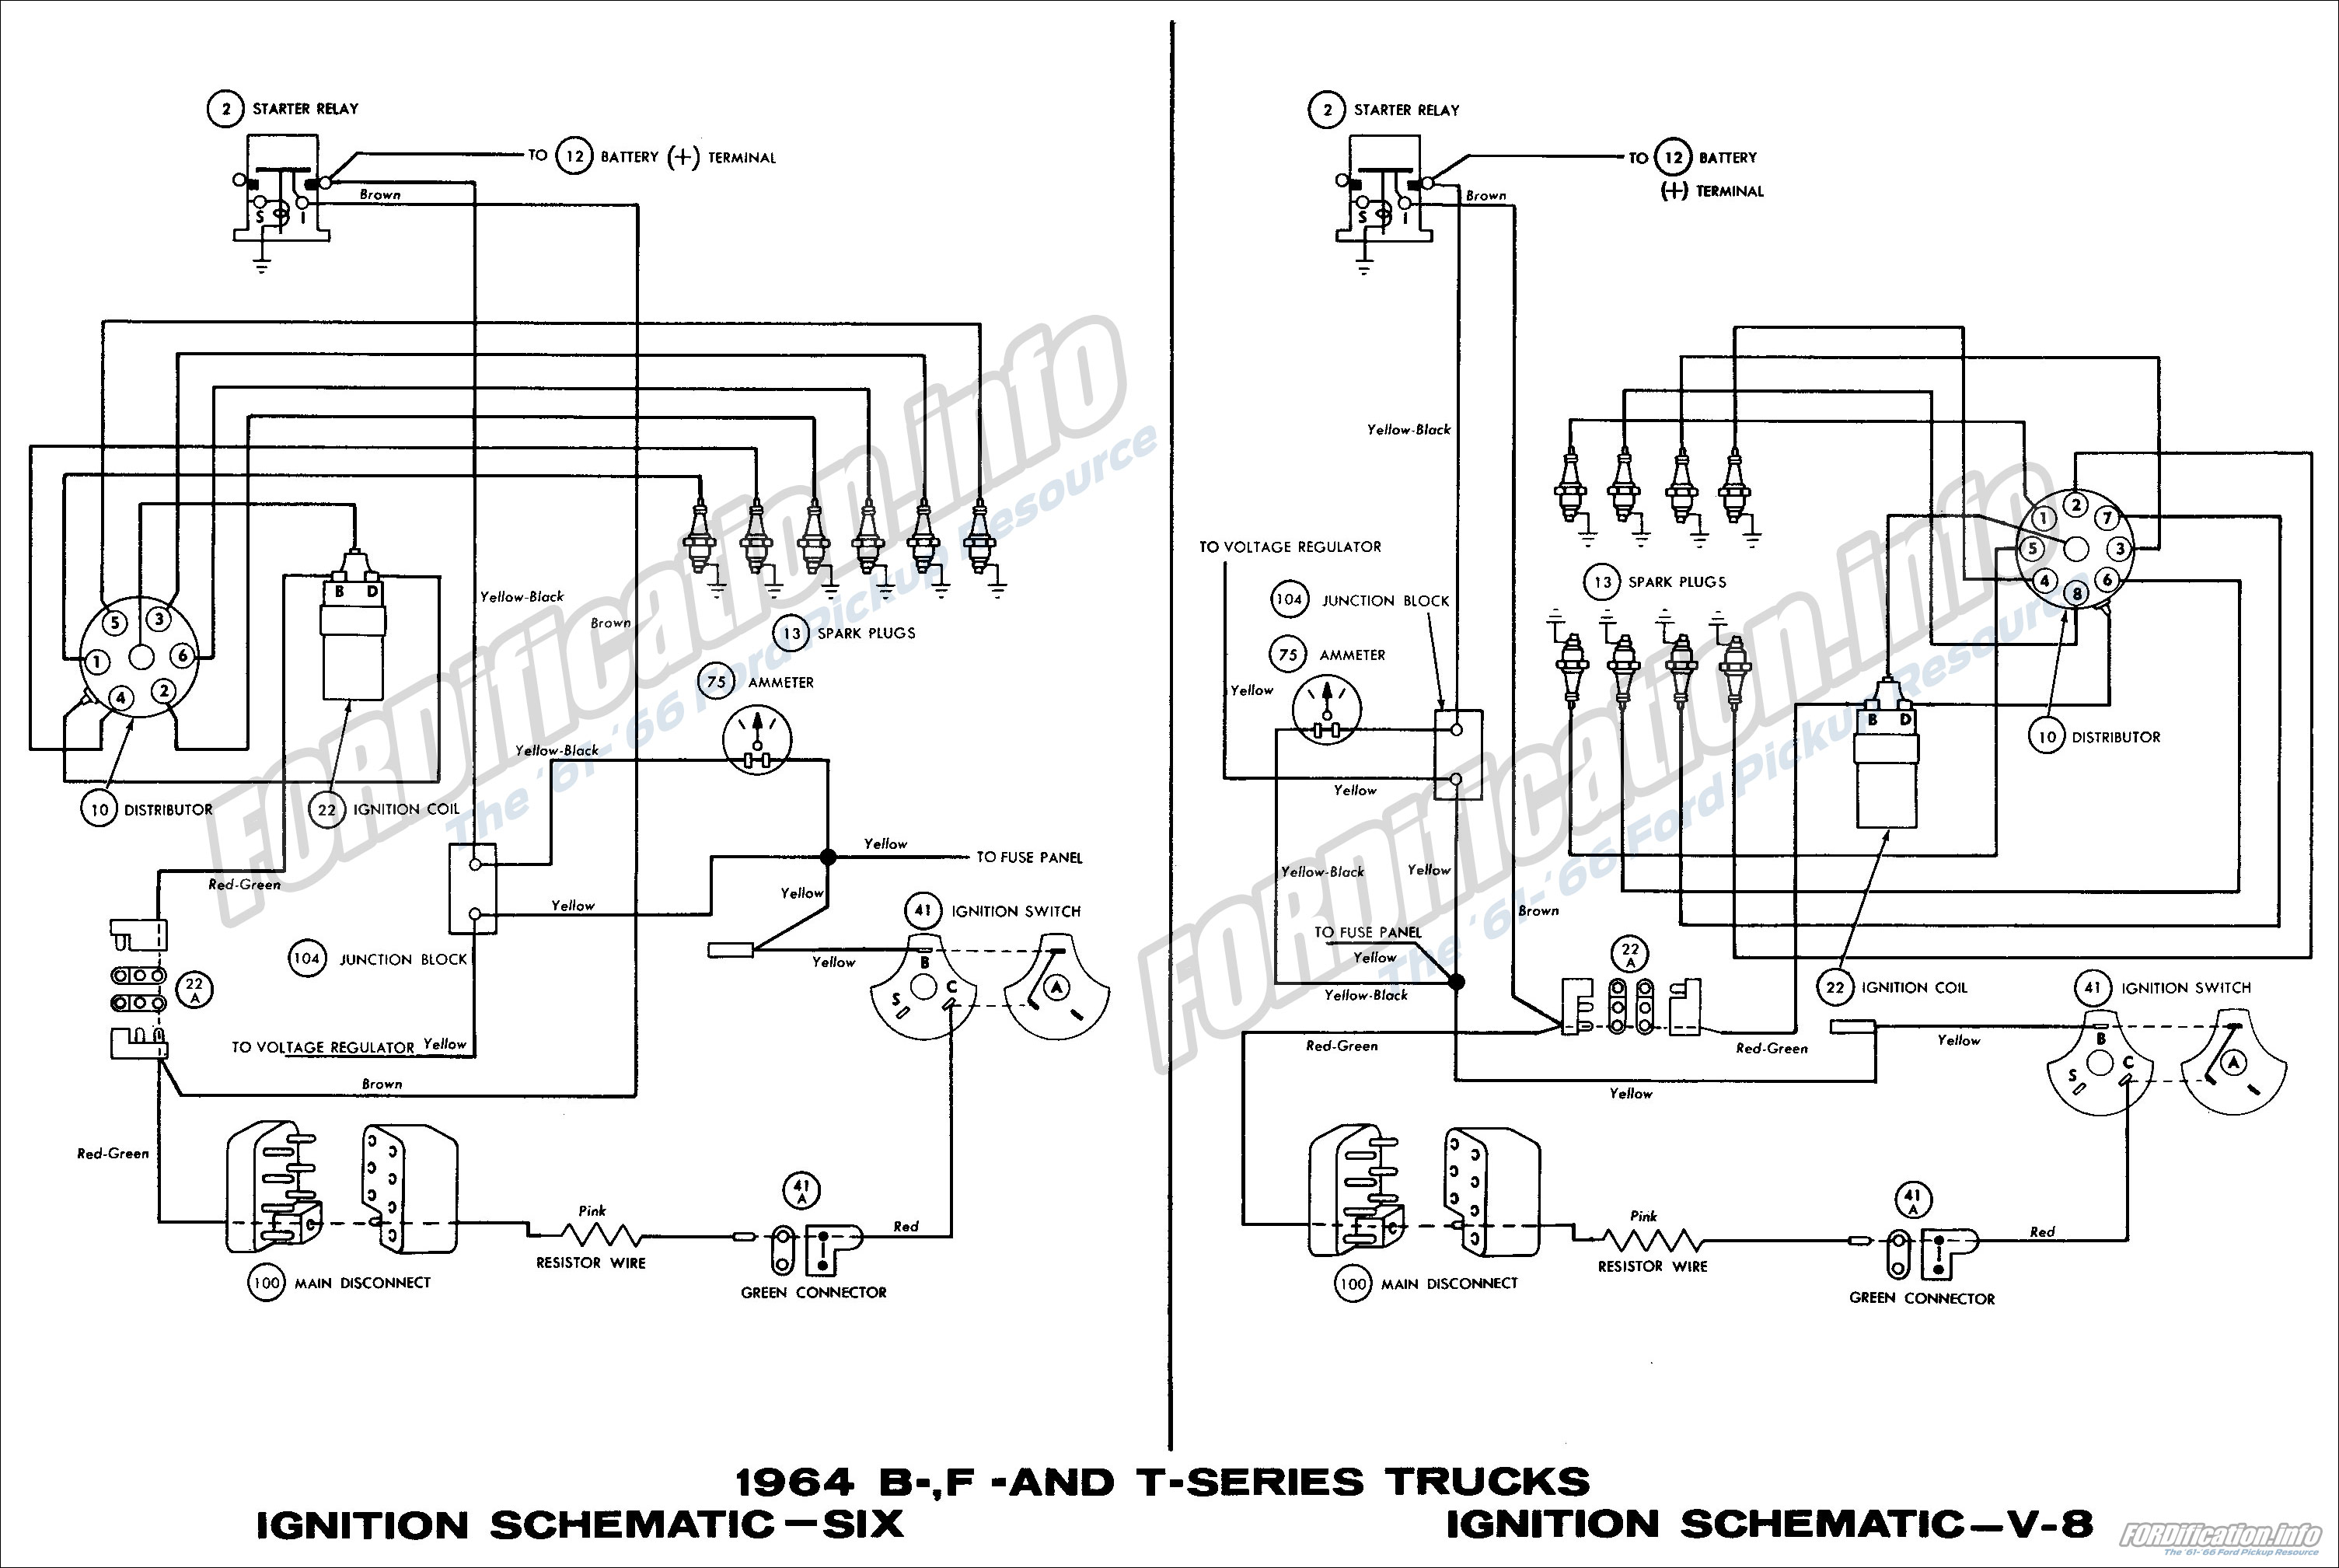 1964_03 wiring diagrams ford pickups the wiring diagram readingrat net Ford E 350 Wiring Diagrams at crackthecode.co